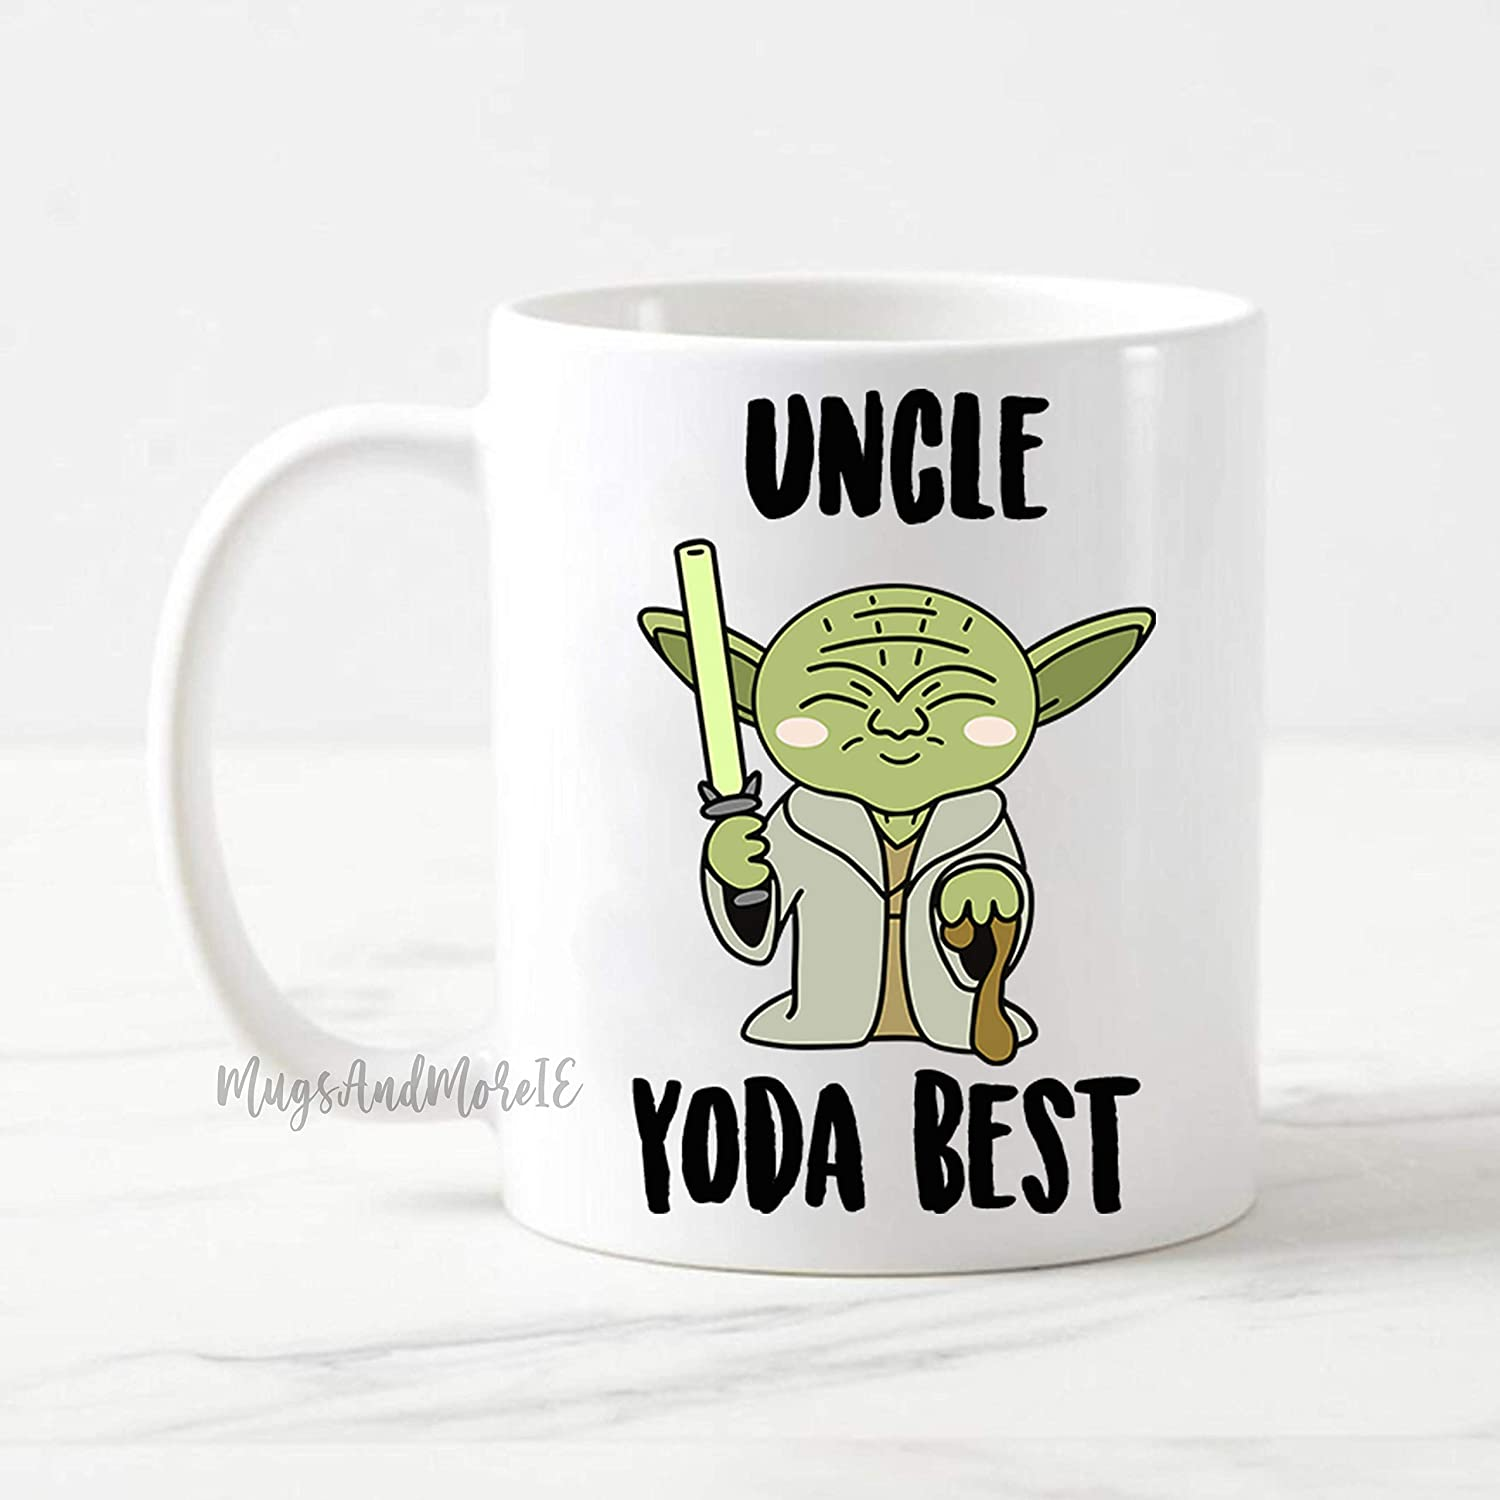 Funny Star Wars Mug Gift for Uncle Uncle Yoda Best Coffee Mug Star Wars Gift Uncle Gifts Uncle Present Funny Coffee Mug Uncle Mug